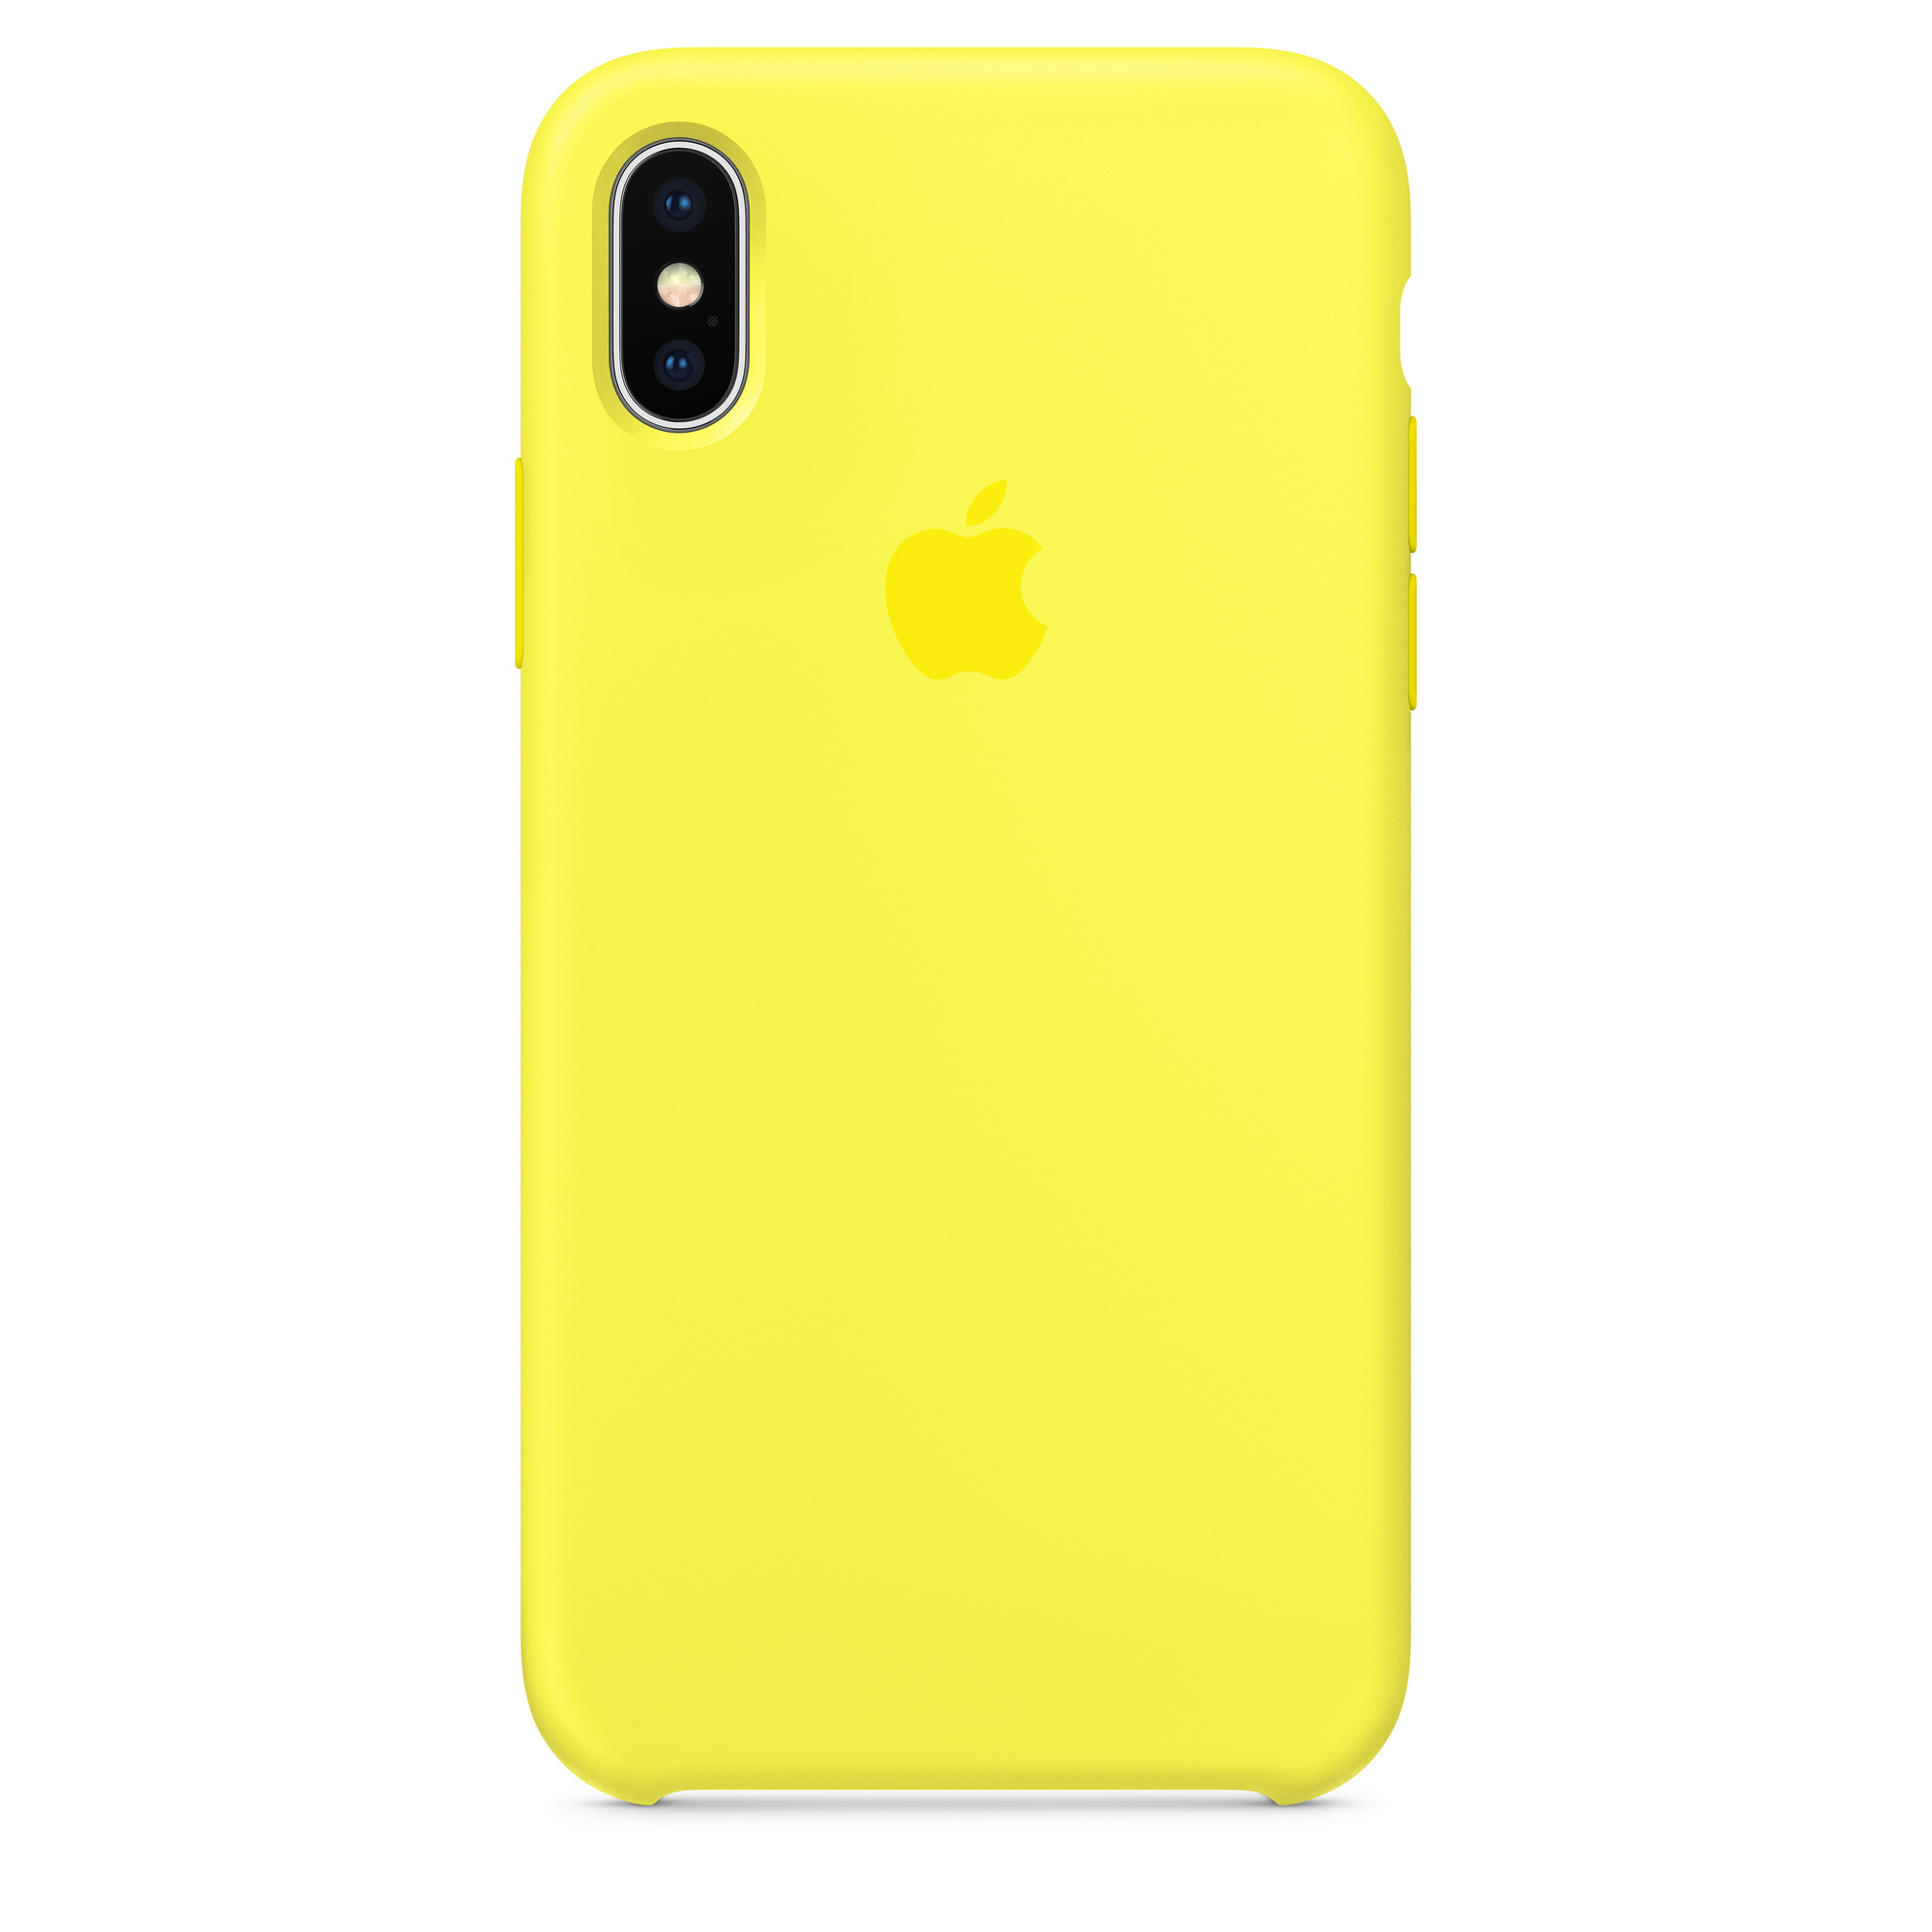 cheap for discount 692bc 83b70 iPhone X Silicone Case - Flash